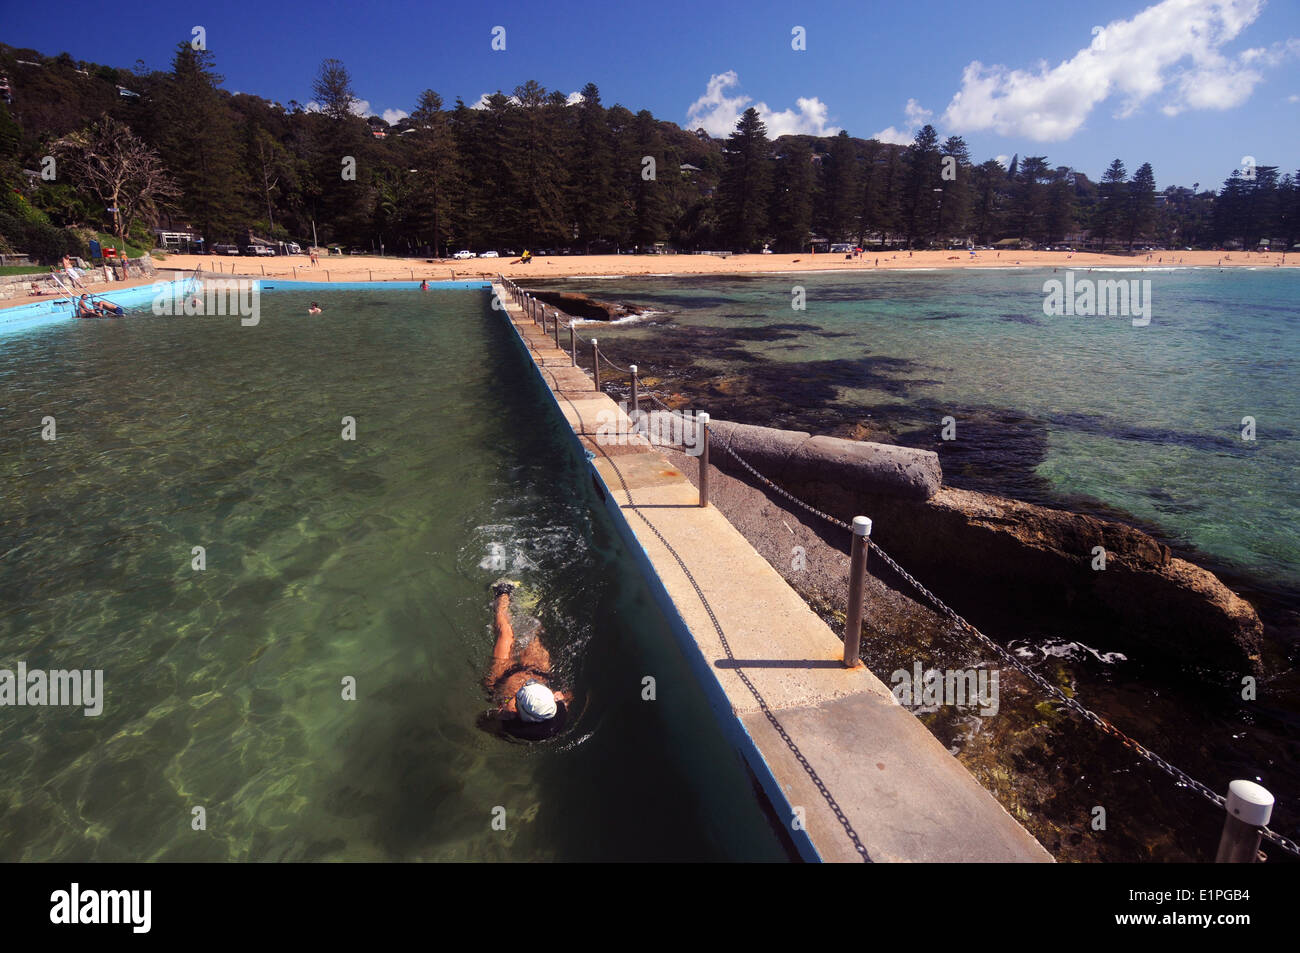 Water pool swim nsw stock photos water pool swim nsw stock images alamy for North sydney pool swimming lessons